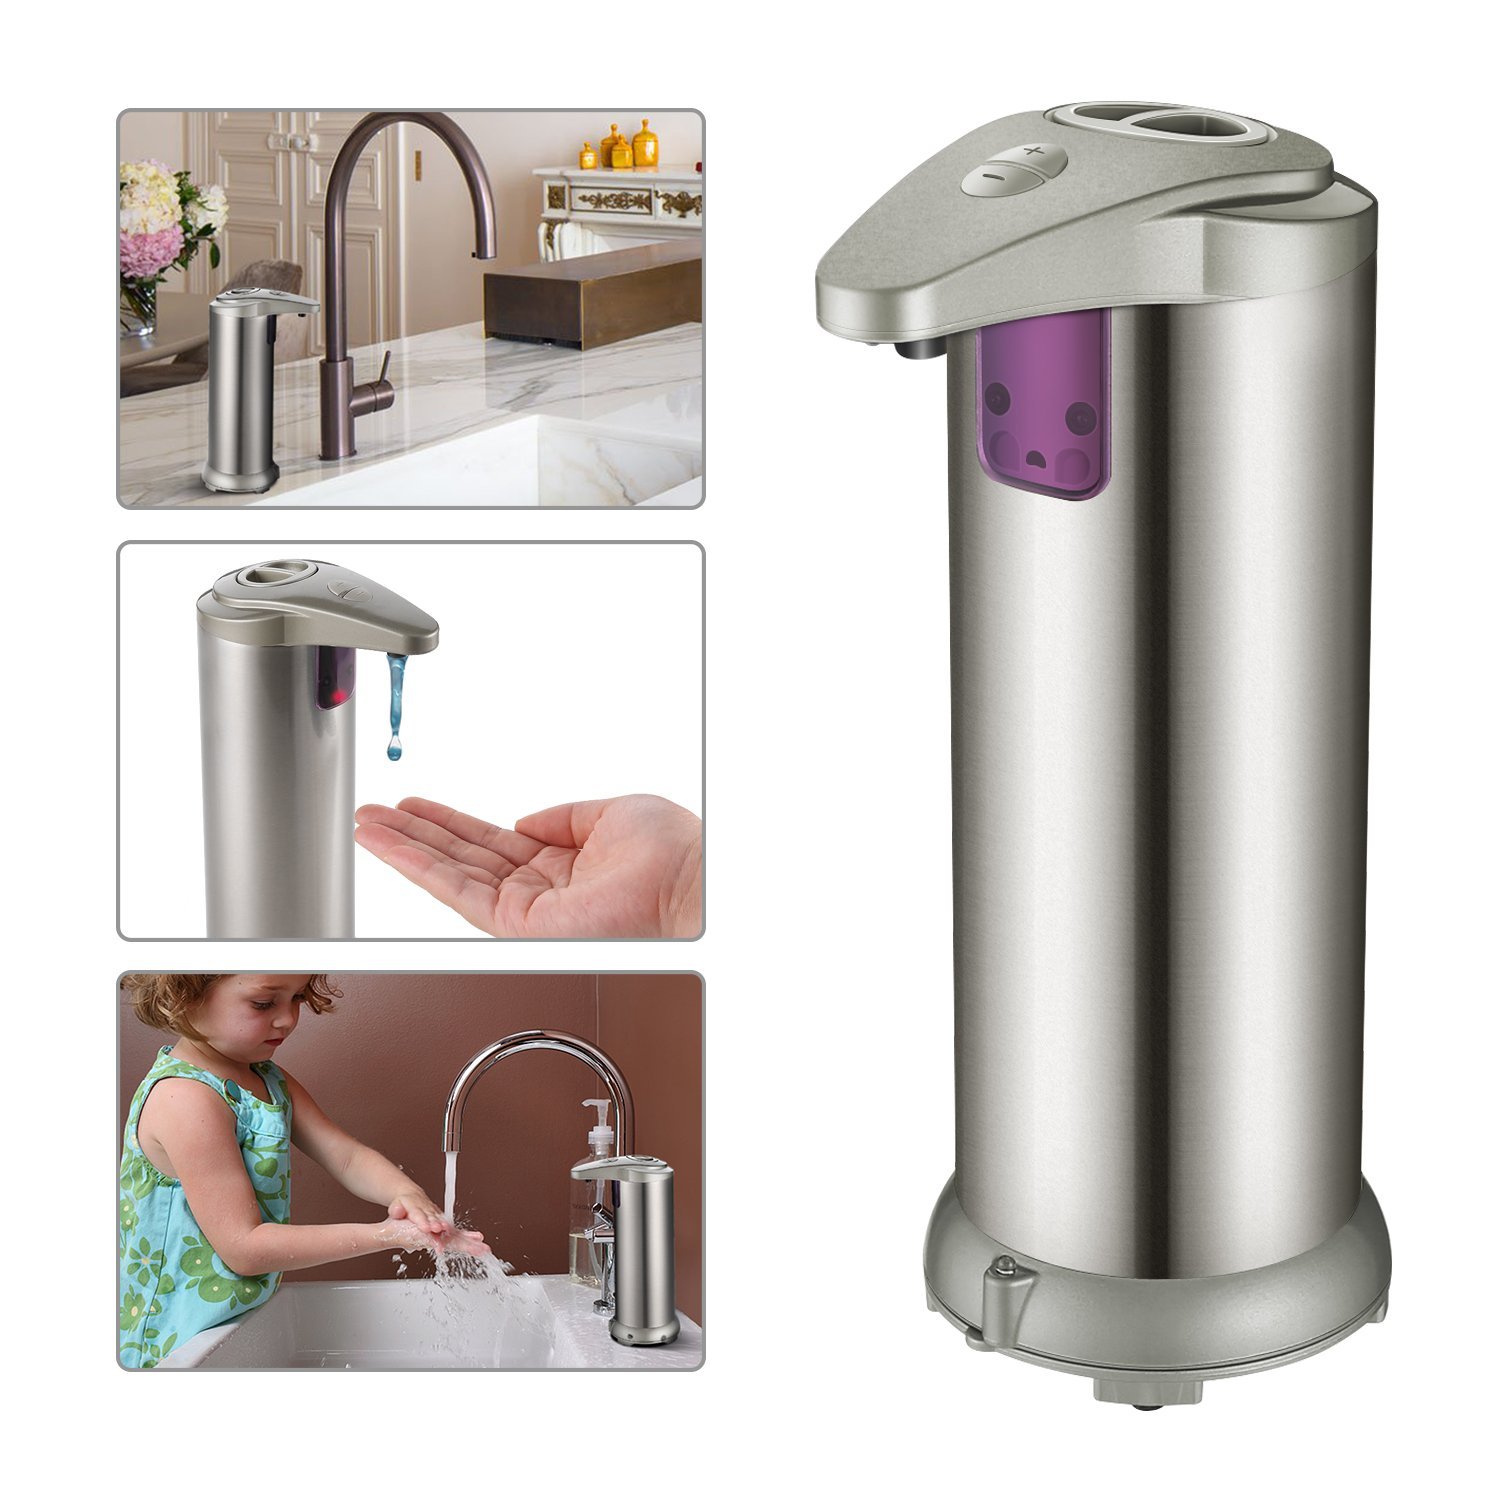 Automatic Soap Dispenser, HOMTOYOU 280ML Soap Dispenser, Stainless Steel Hand Soap Dispenser, Touchless Hands-Free Motion Sensor Liquid Soap Dispensers Powered by 4PCS AAA (Not Include), Automatic Soap Dispensers with Waterproof Base for Kitchen and Bathr